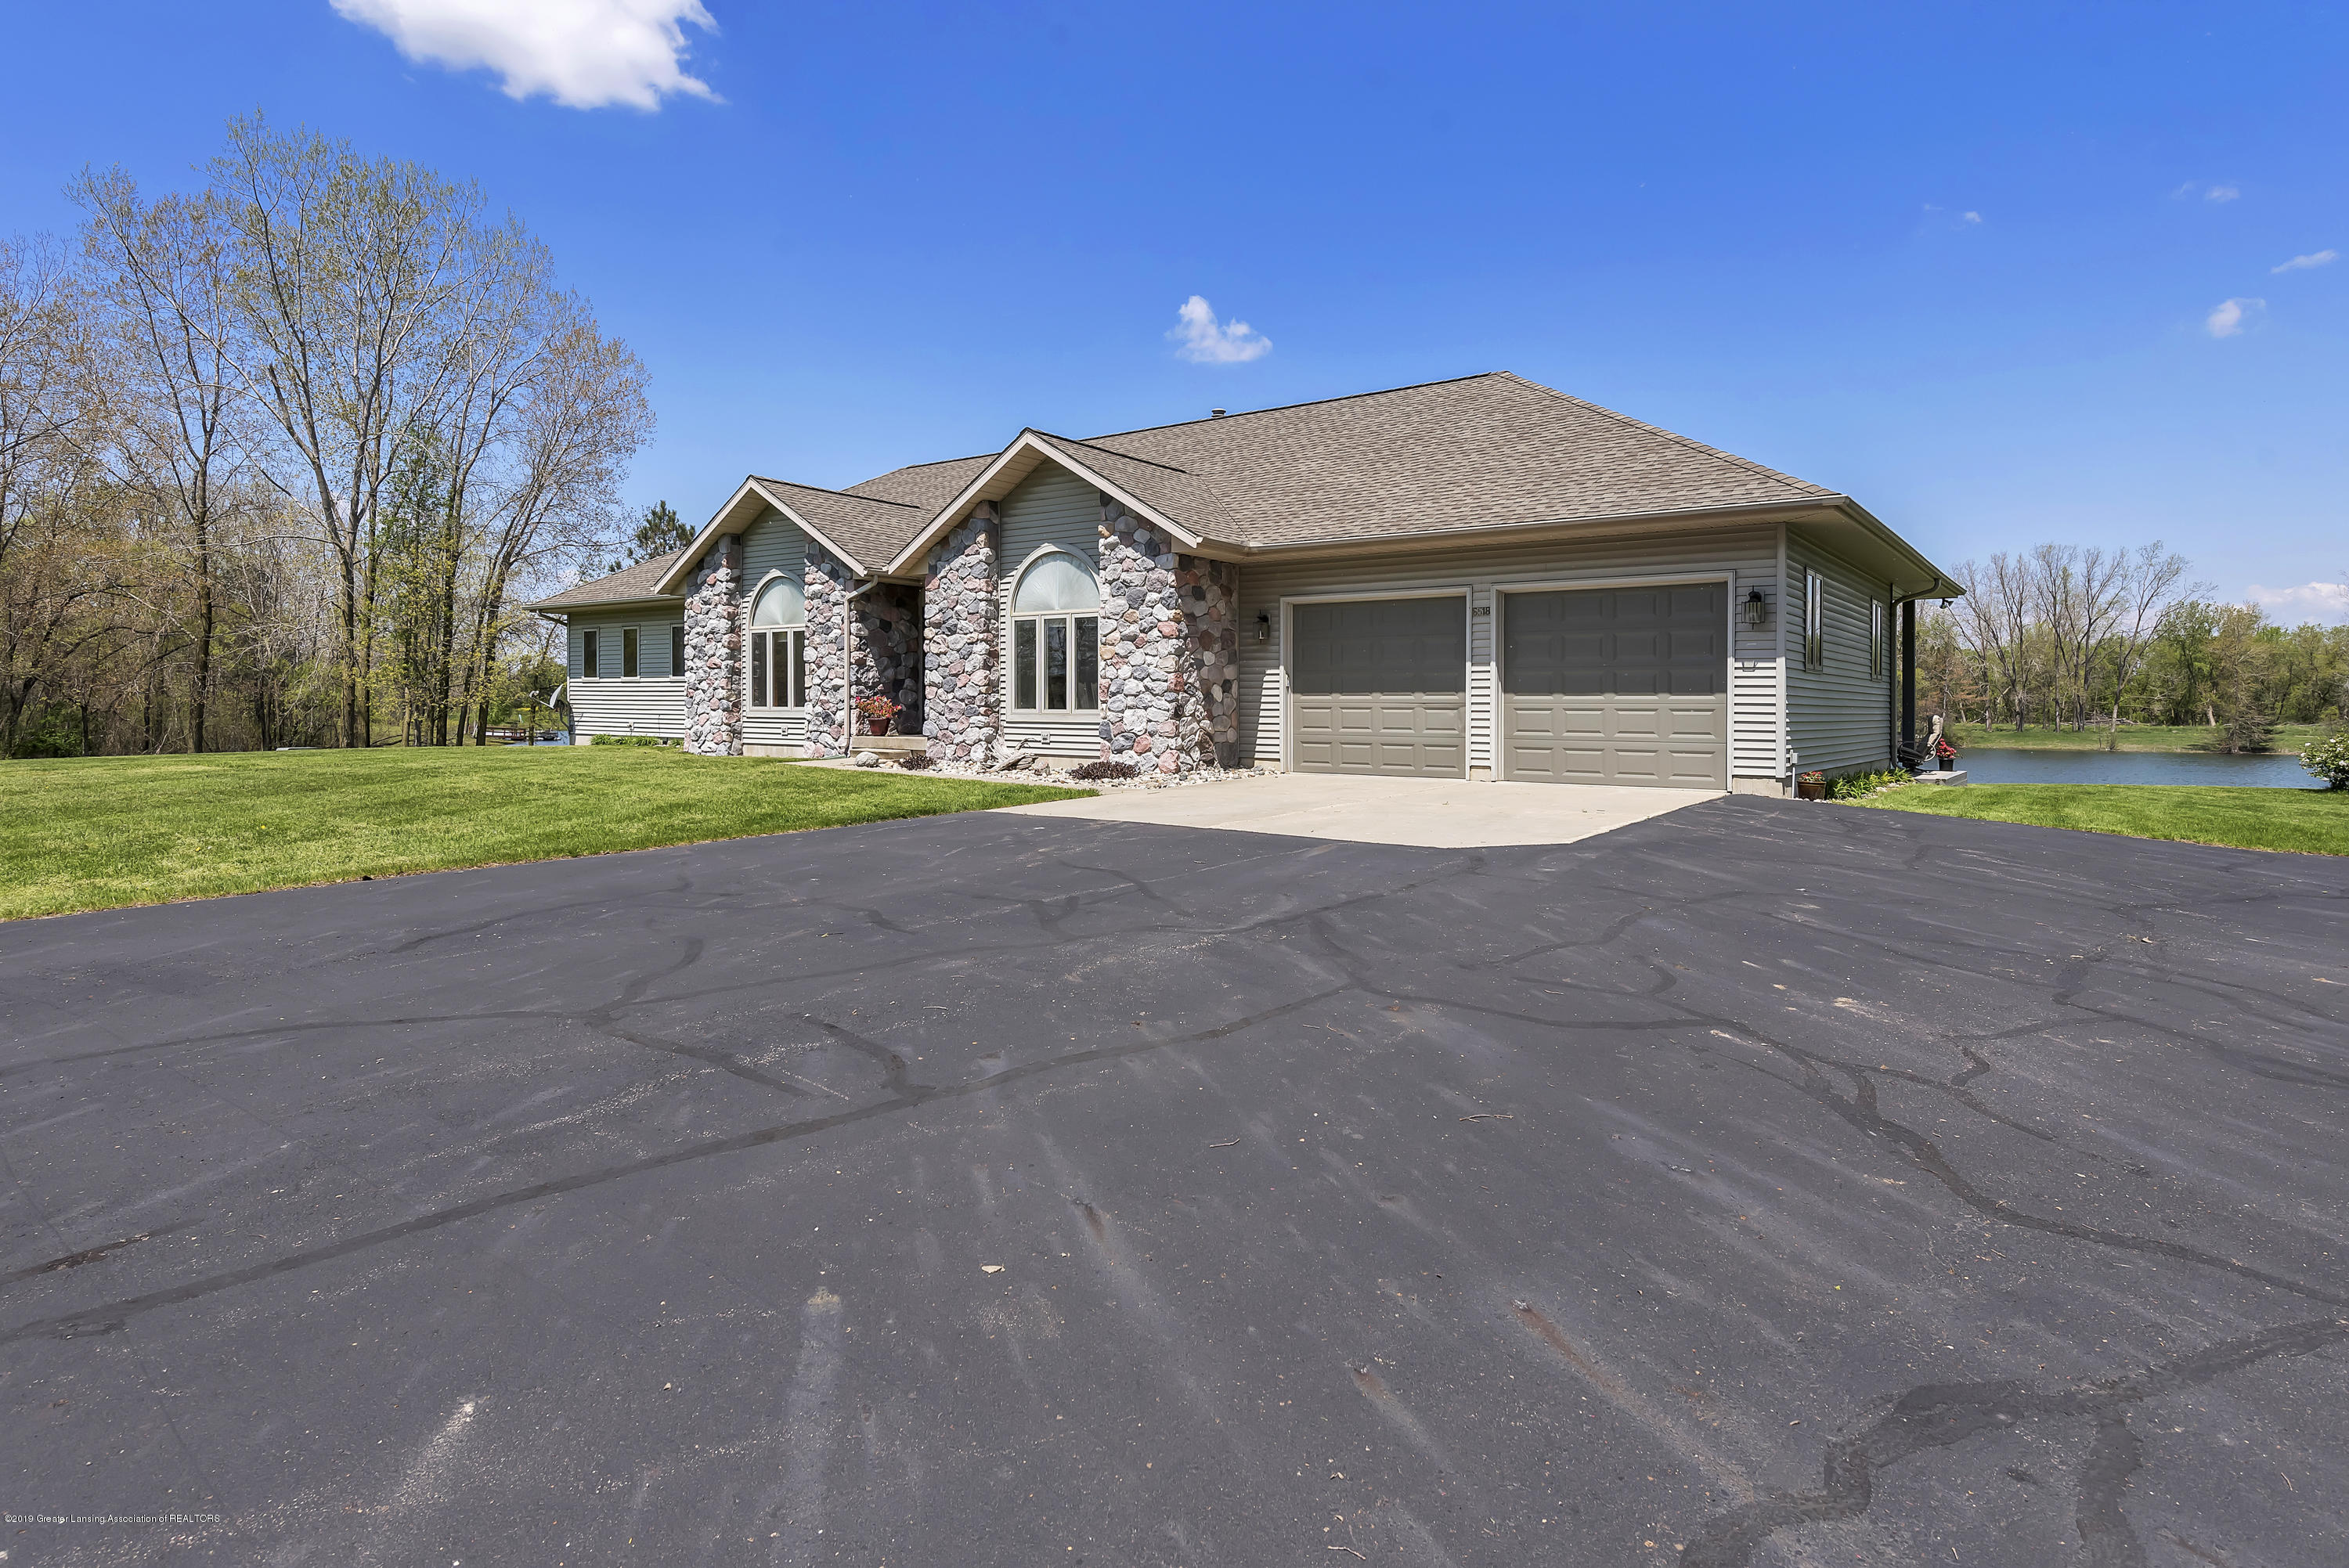 8558 Ironstone - Front view with paved driveway - 41